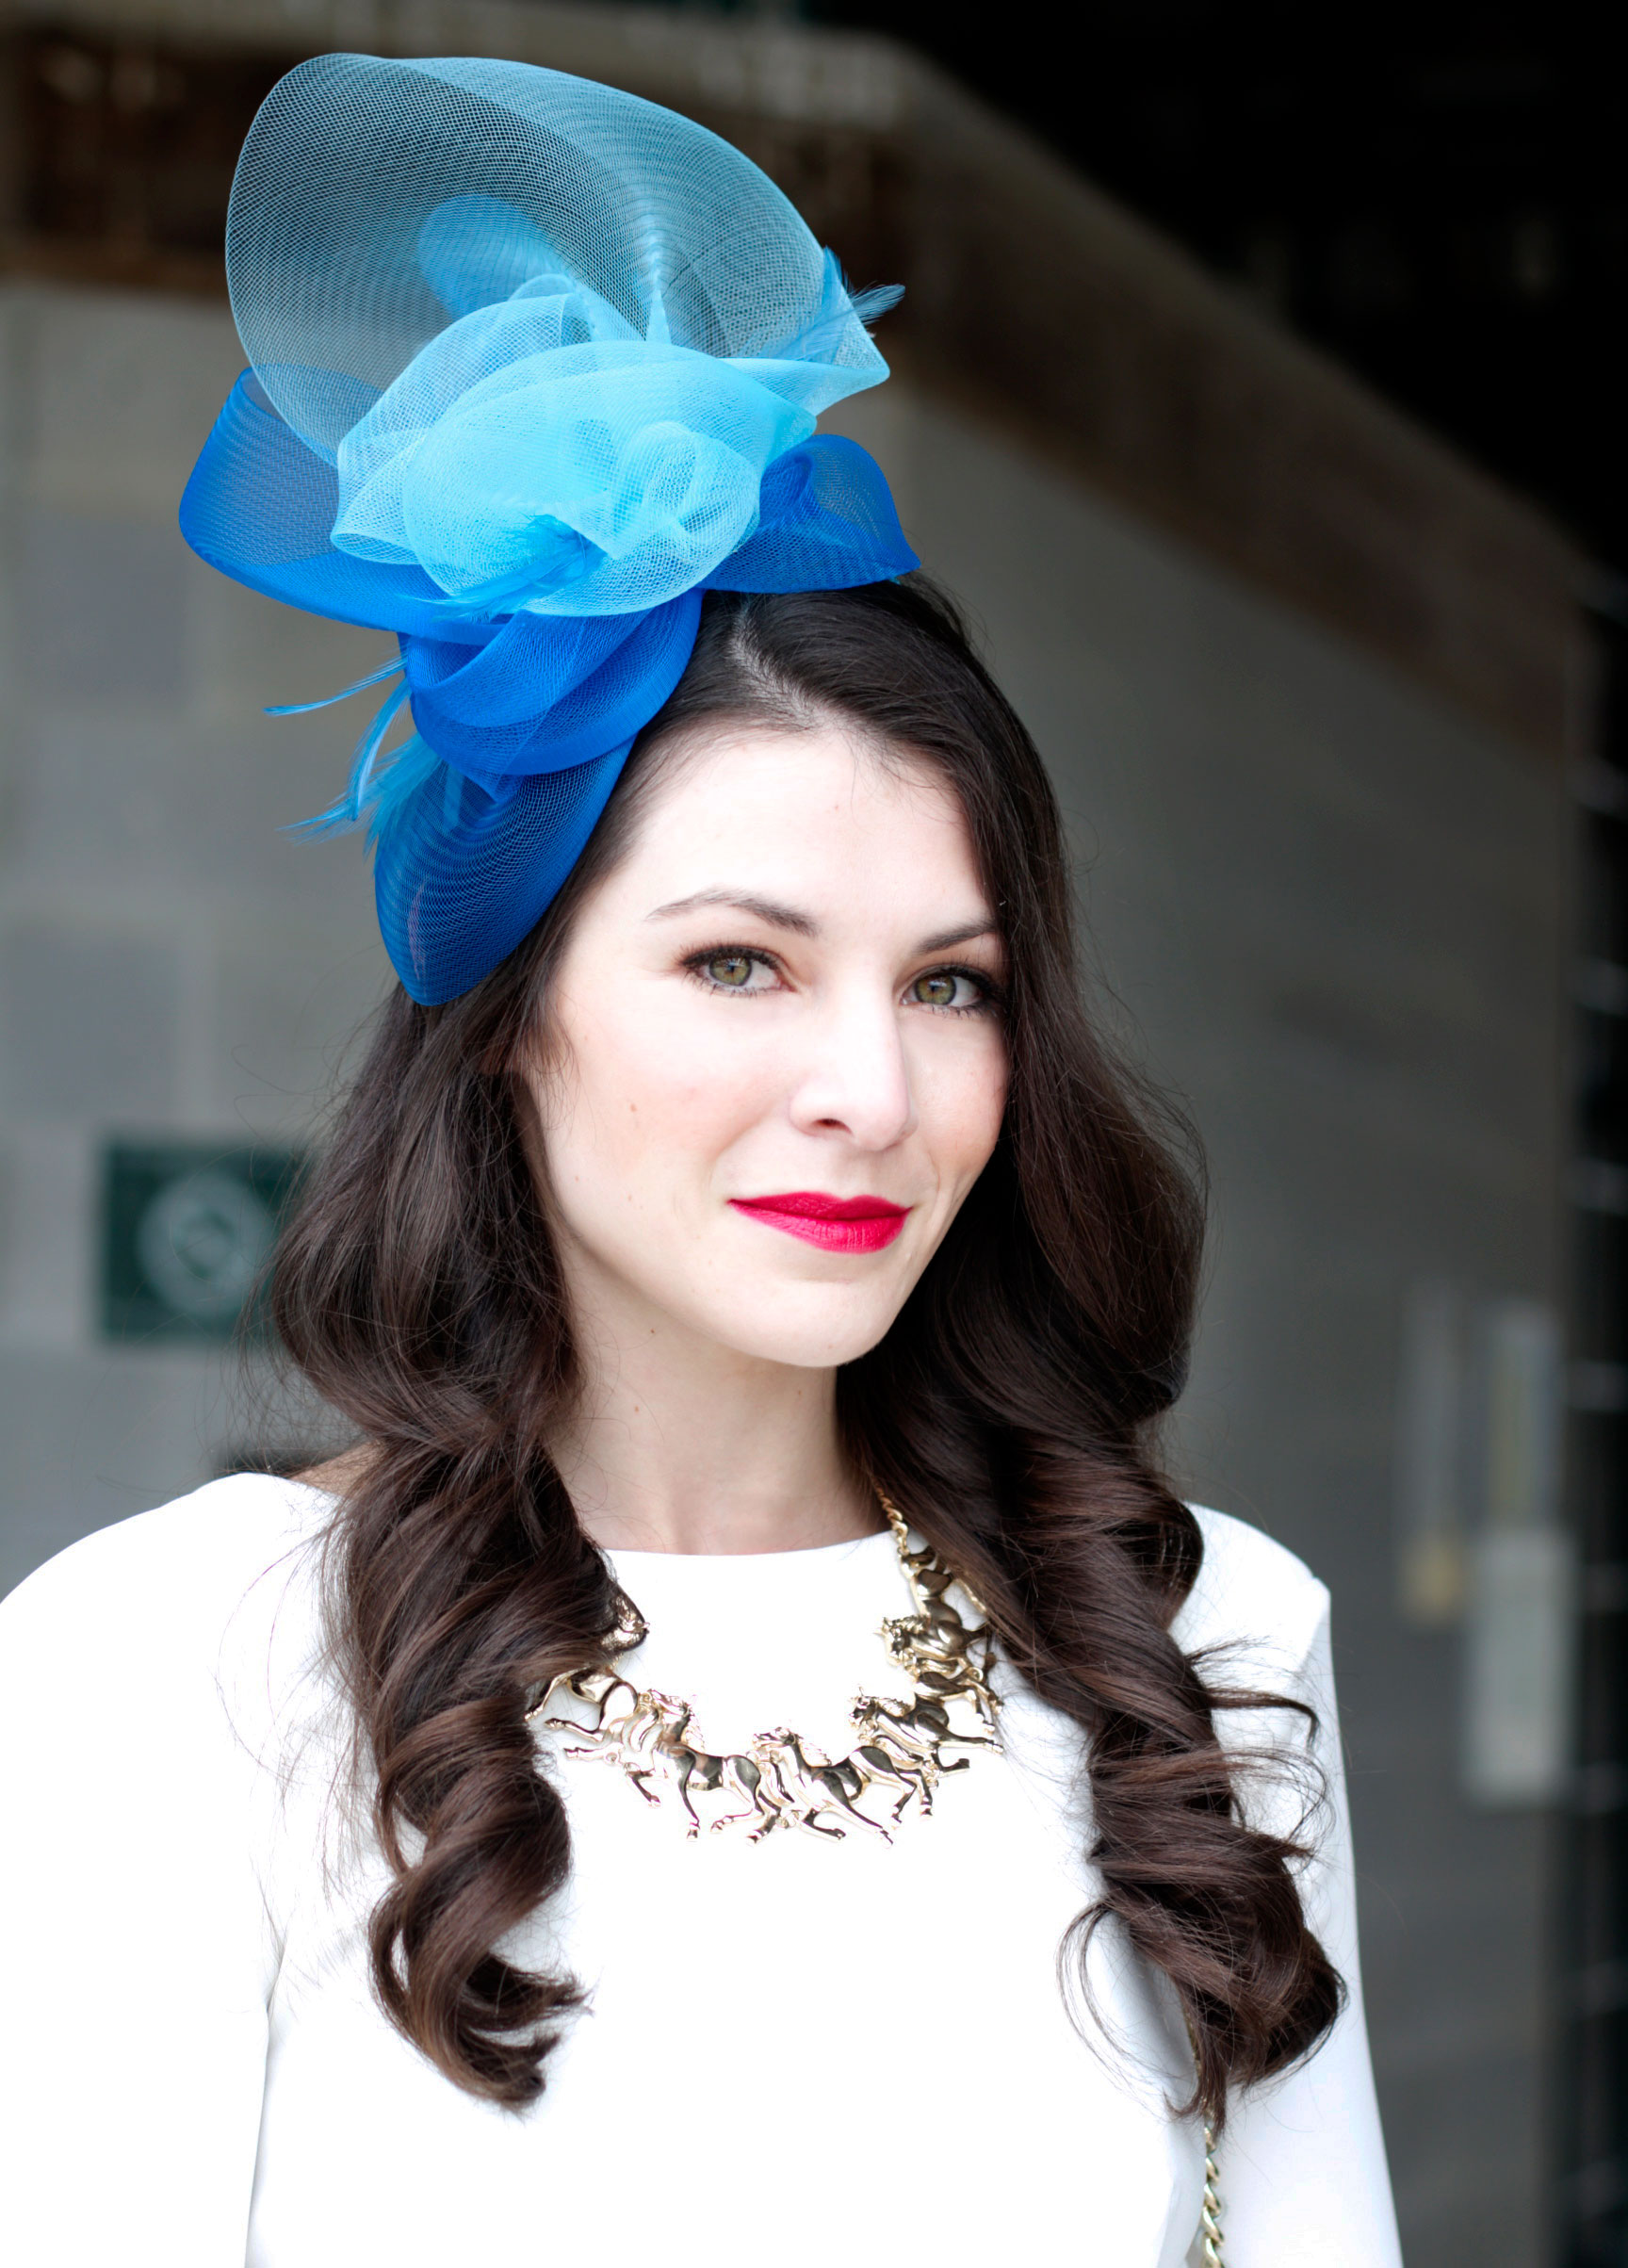 Kentucky Derby Fashion, The Hat Girls, Fascinators, Kentucky Derby Hats, AQ AQ, C/MEO The Label, J.Crew Statement Necklace, Rebecca Minkoff Handbags, Keeneland Fashion, Kentucky Fashion Blogger